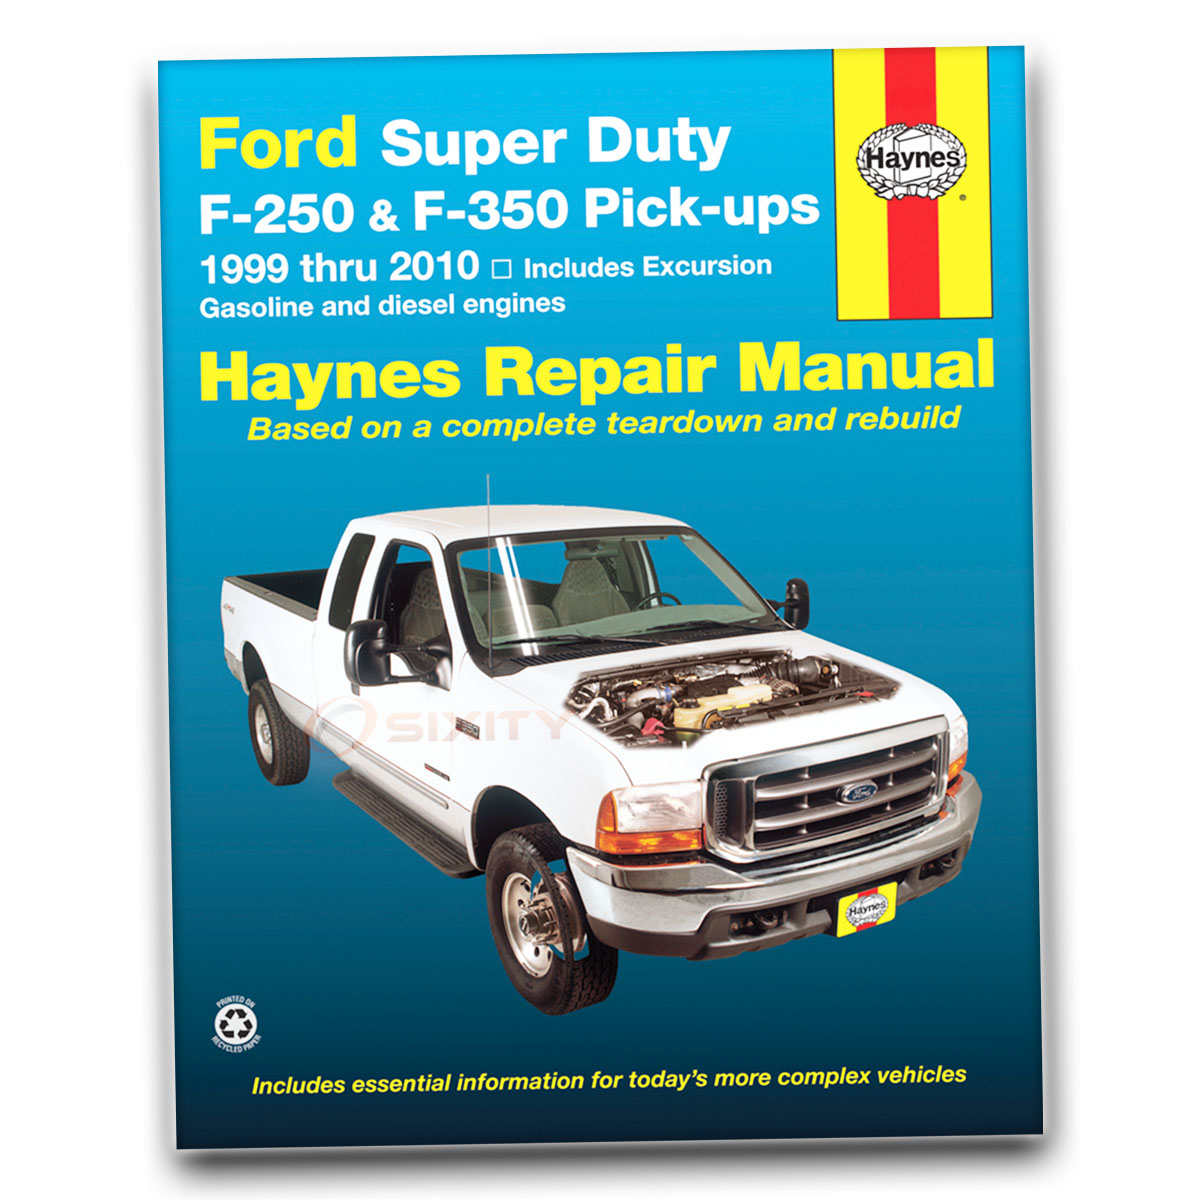 Haynes Repair Manual 36060 for Ford Super Duty F-250 350 Pick-ups Excursion  zo